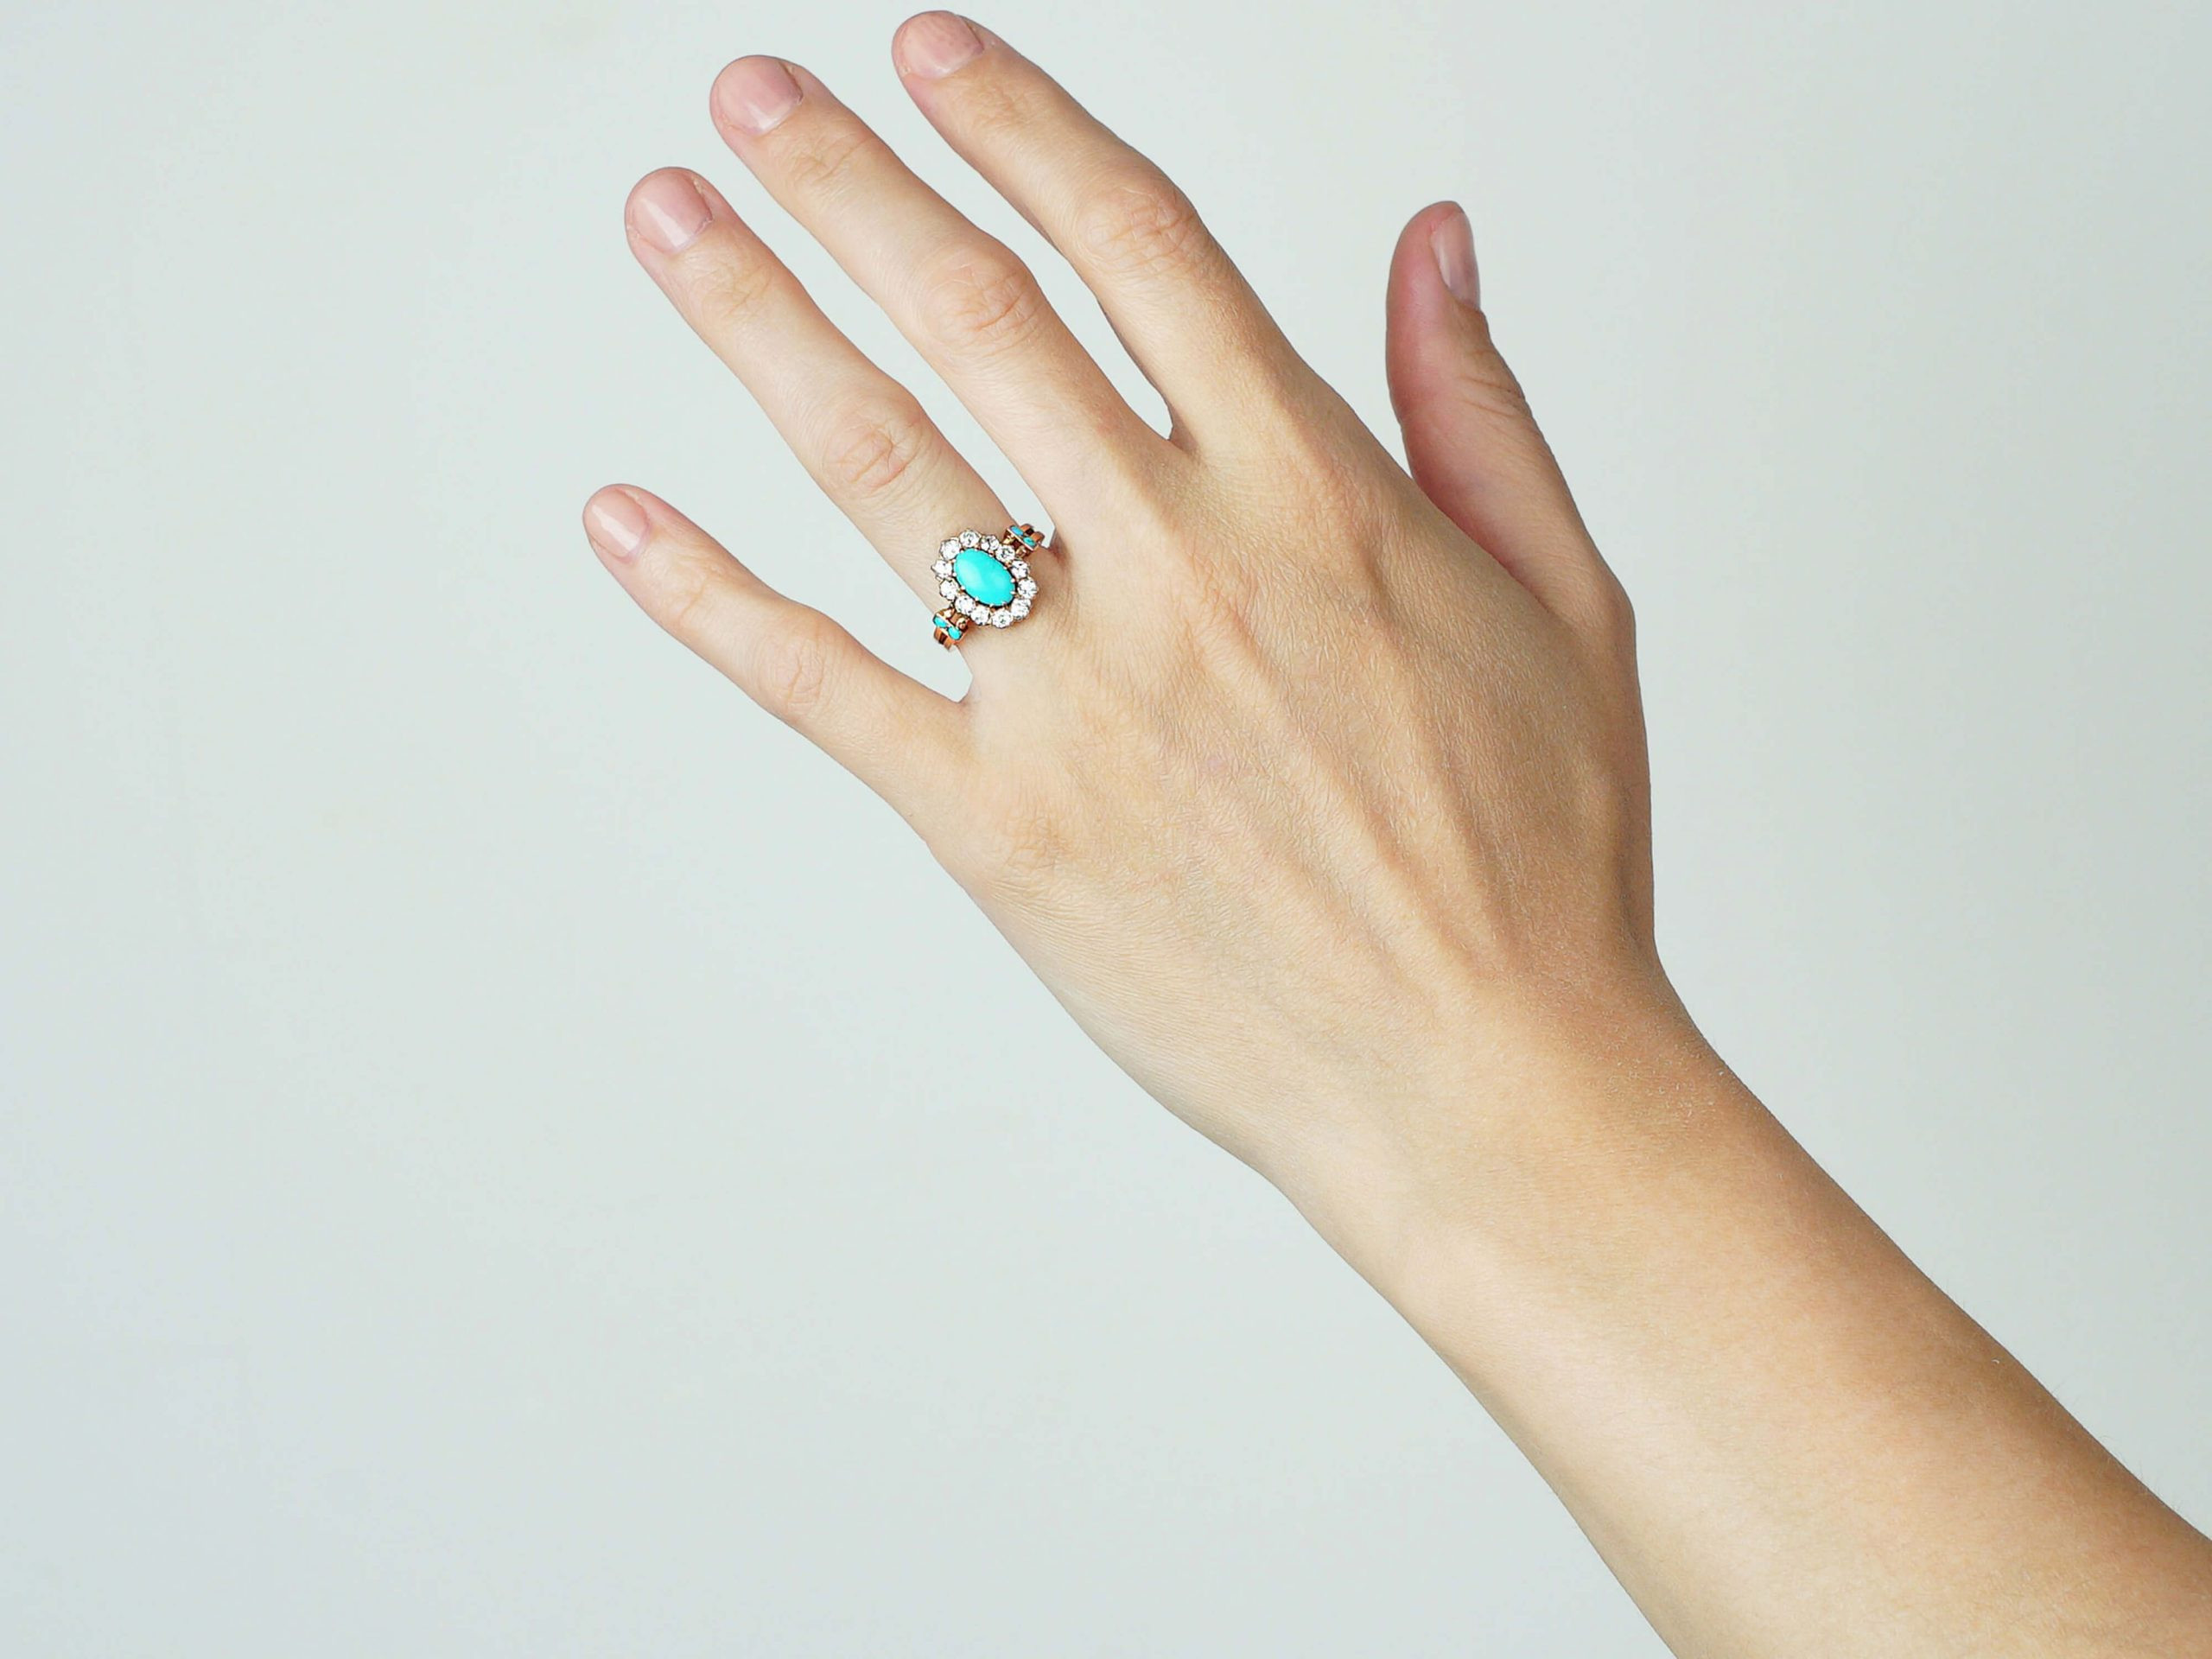 Edwardian 18ct Gold, Turquoise & Diamond Oval Cluster Ring with Turquoise Set Shoulders